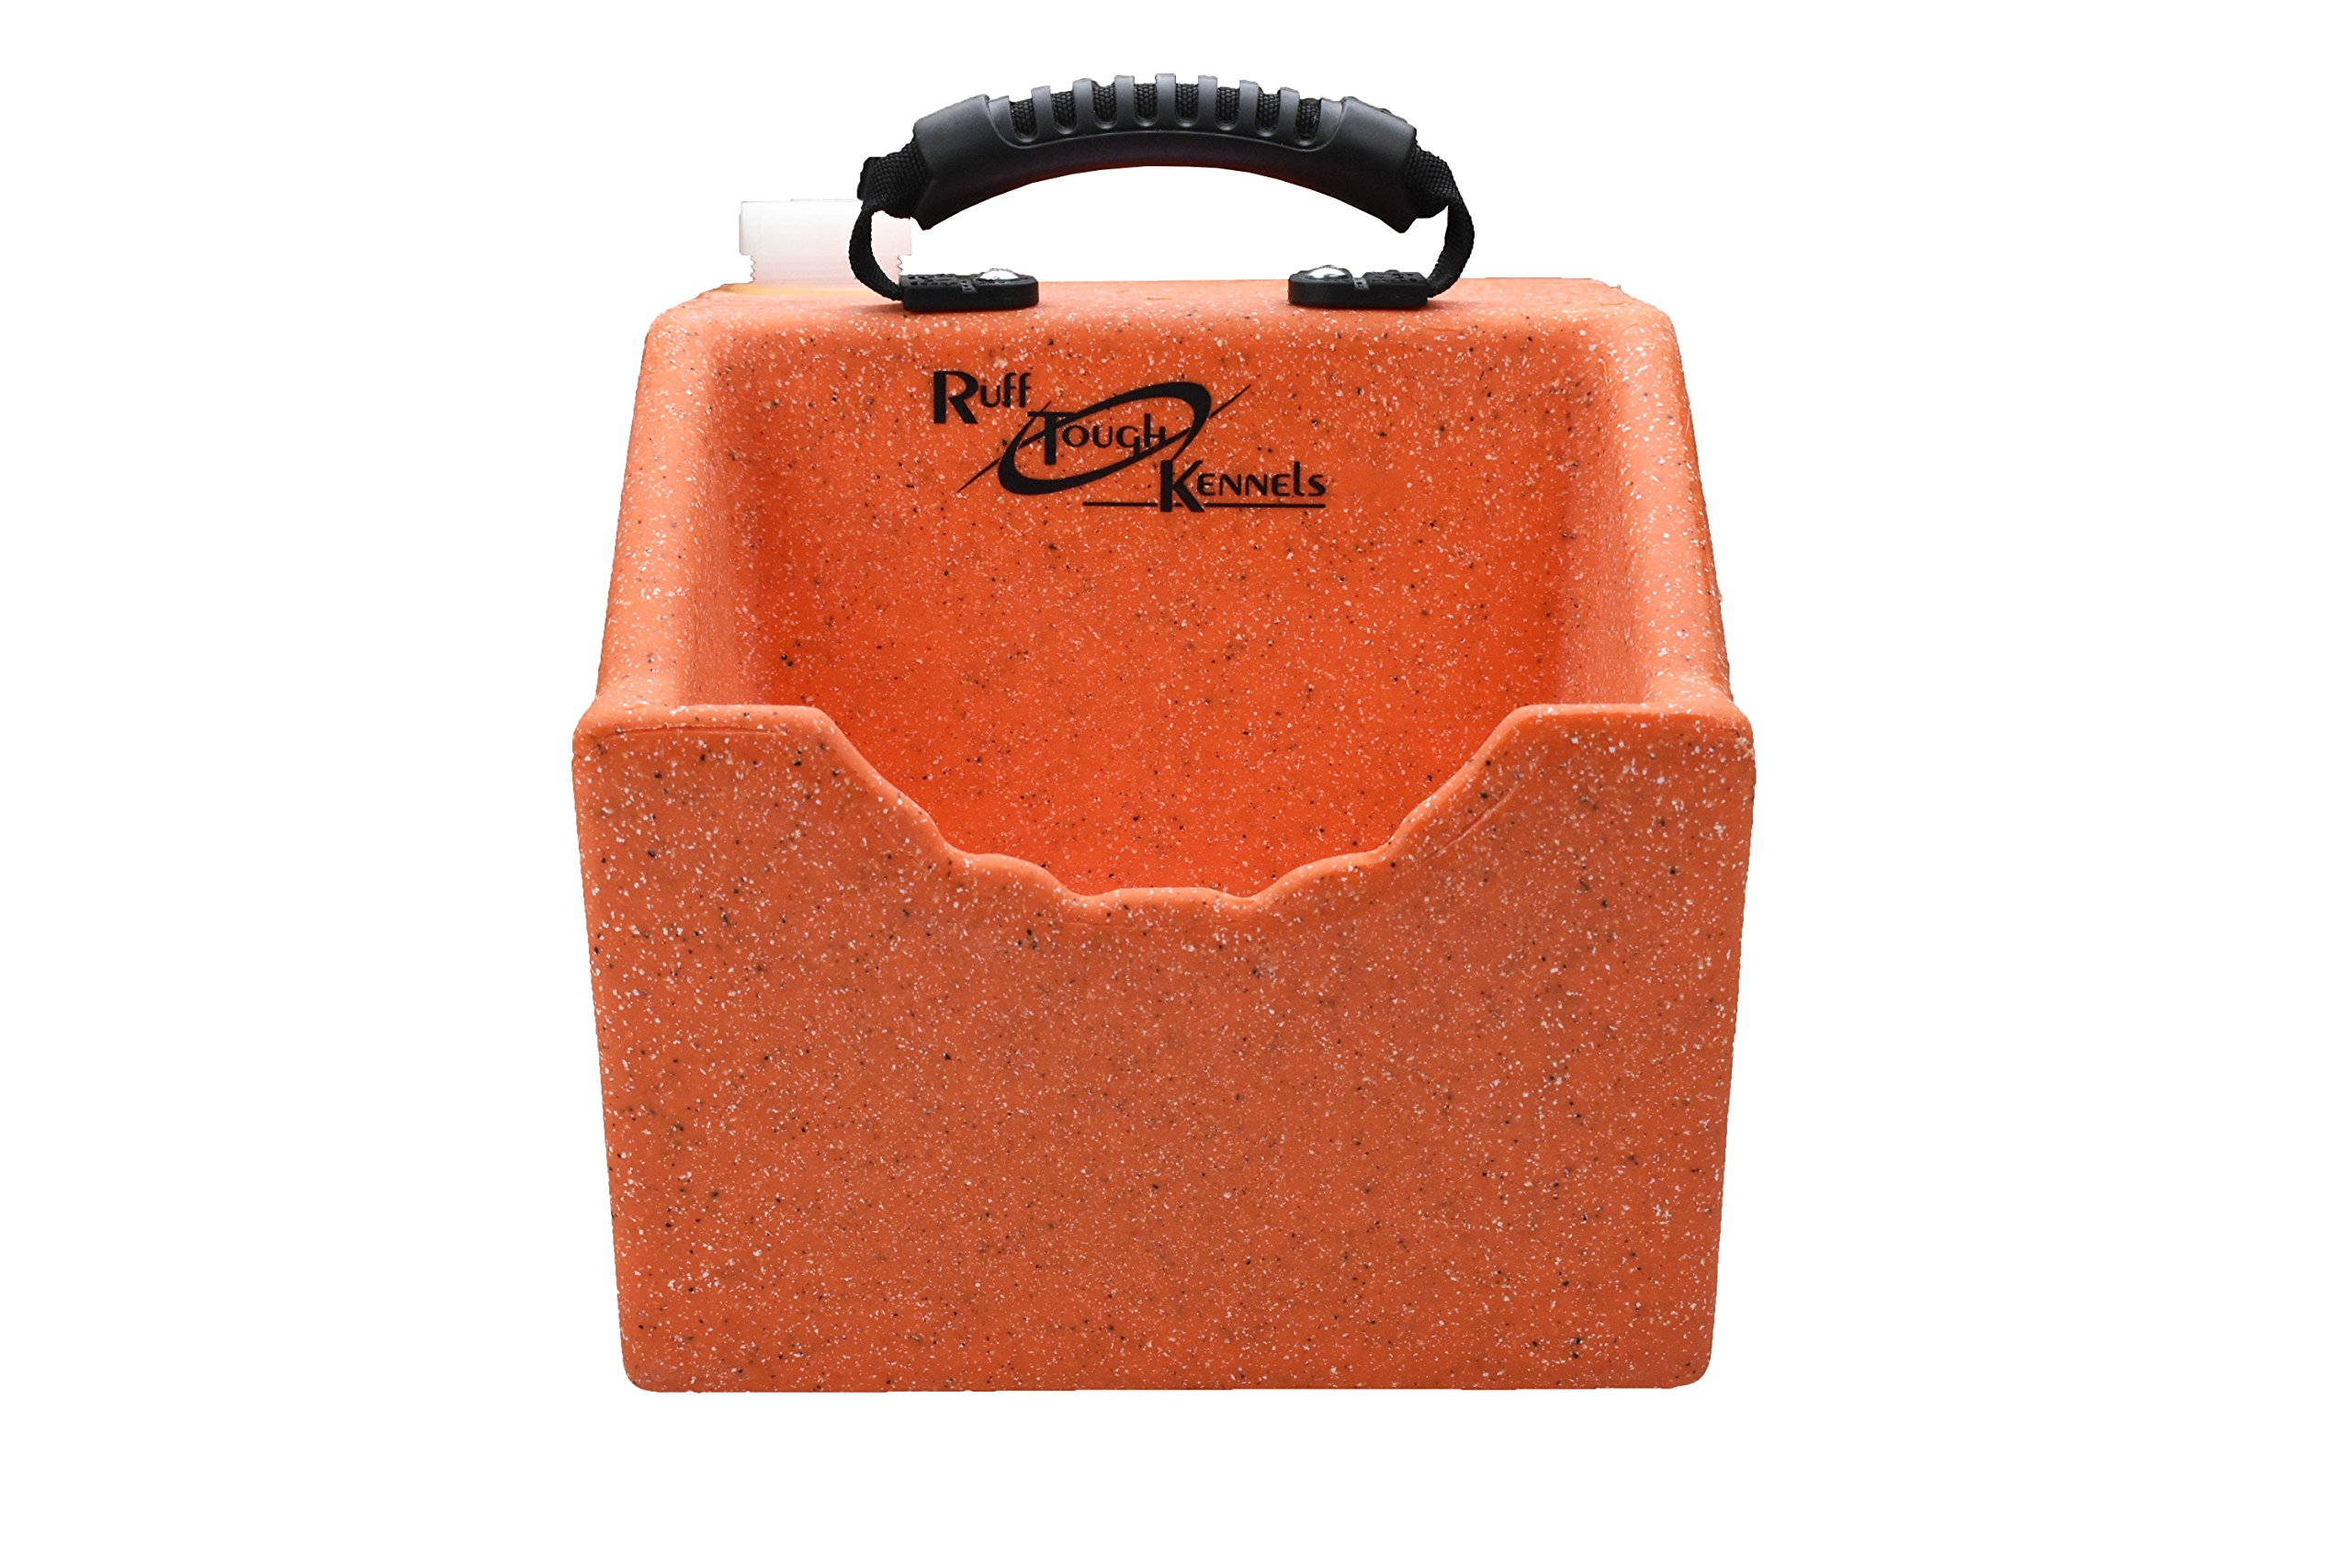 Ruff Tough Kennels Dog Water, Bowl, Orange Color, Easy to use Portable Water Station, Holds 1 Gallon of water, 10.5'' long, 10''wide, 11.5''Tall (Orange)